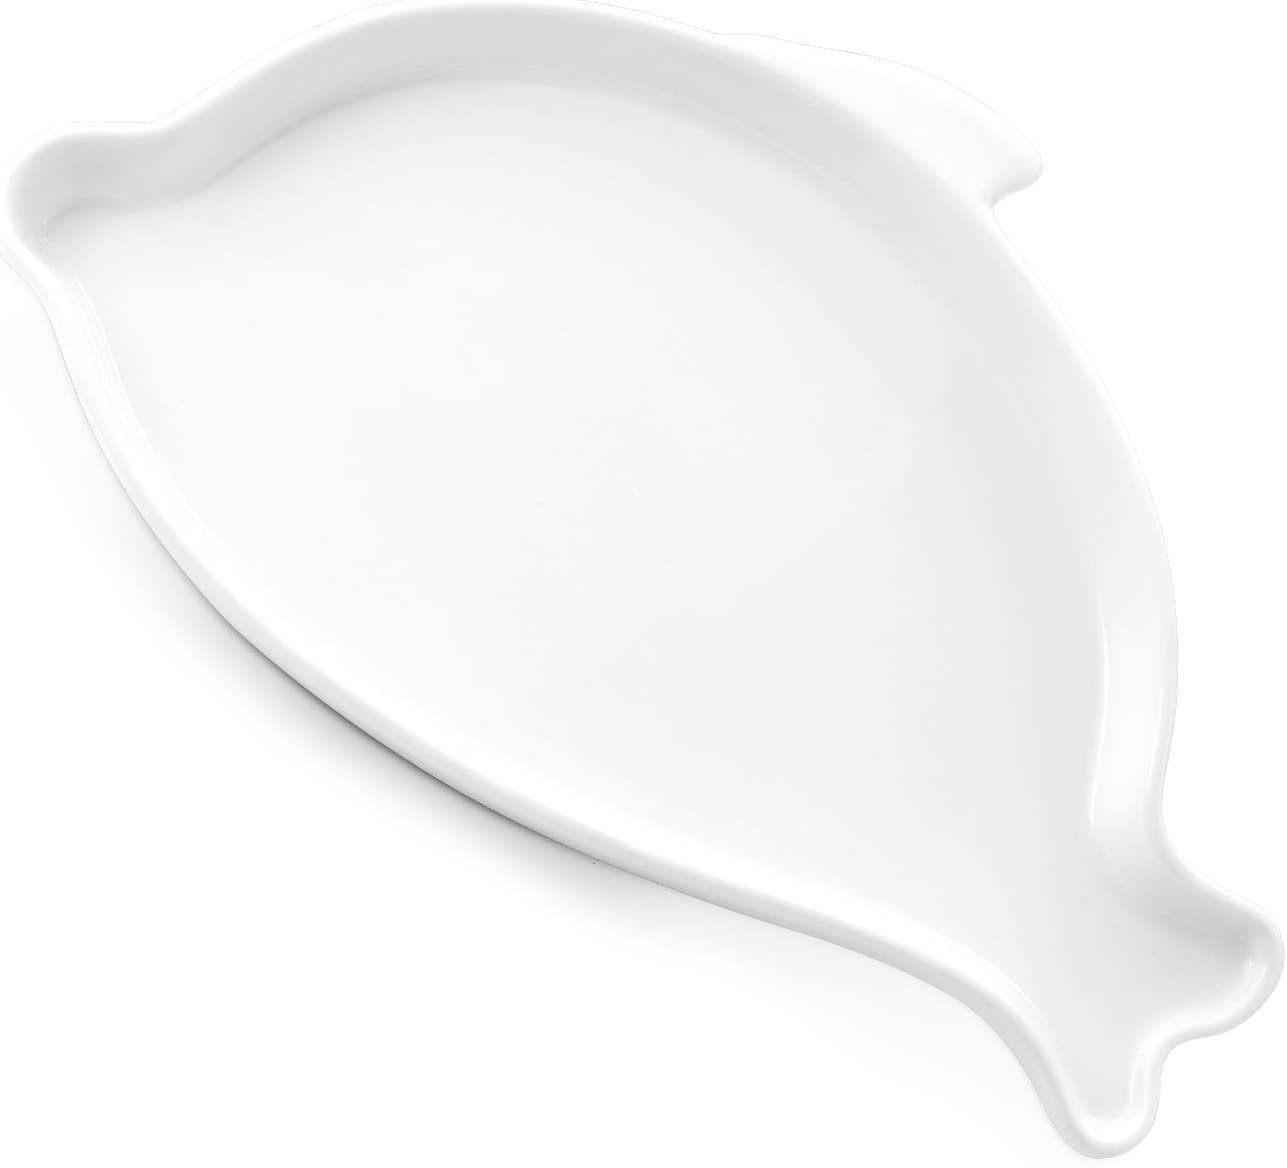 """DOWAN Large Spoon Rest for Kitchen - 7.8"""" Large Dolphin Shape Spoon Holder for Stove Top, Porcelain Ceramic Cooking Spoon Rest, Cute Kitchen Decor and Accessories, White"""